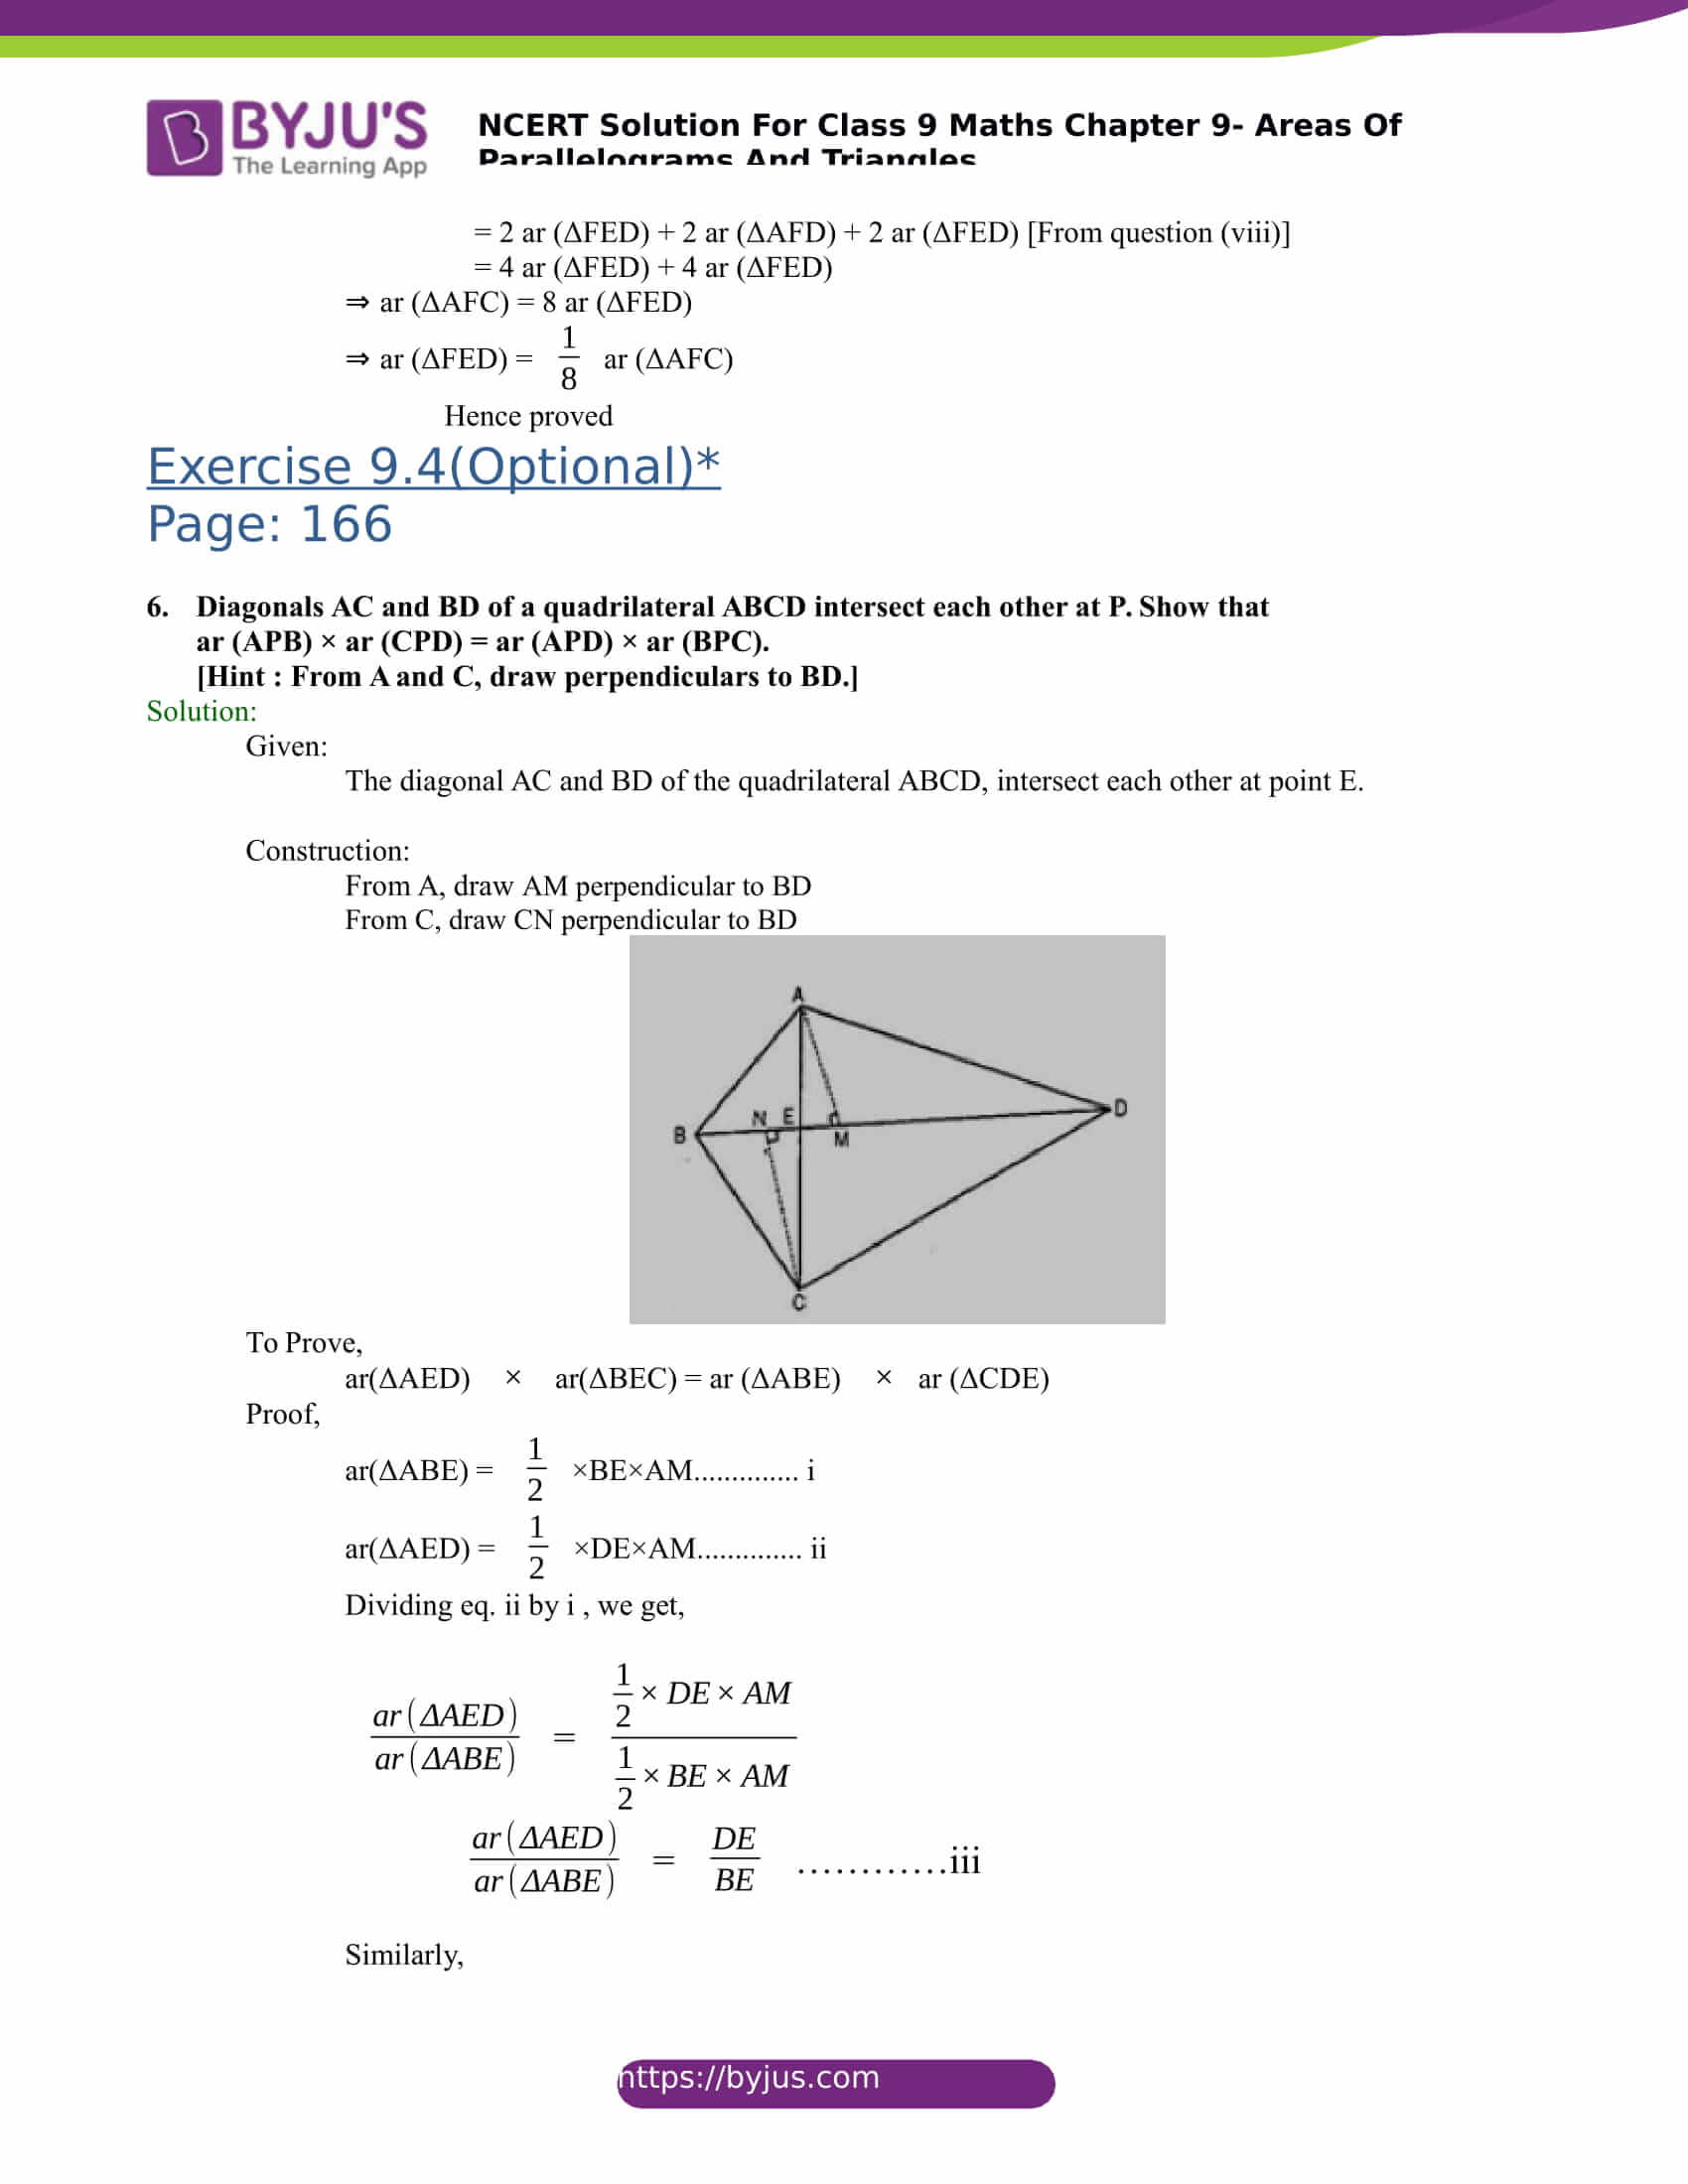 NCERT Solutions for class 9 Maths Chapter 9 Areas of parallelograms and triangles Part 26